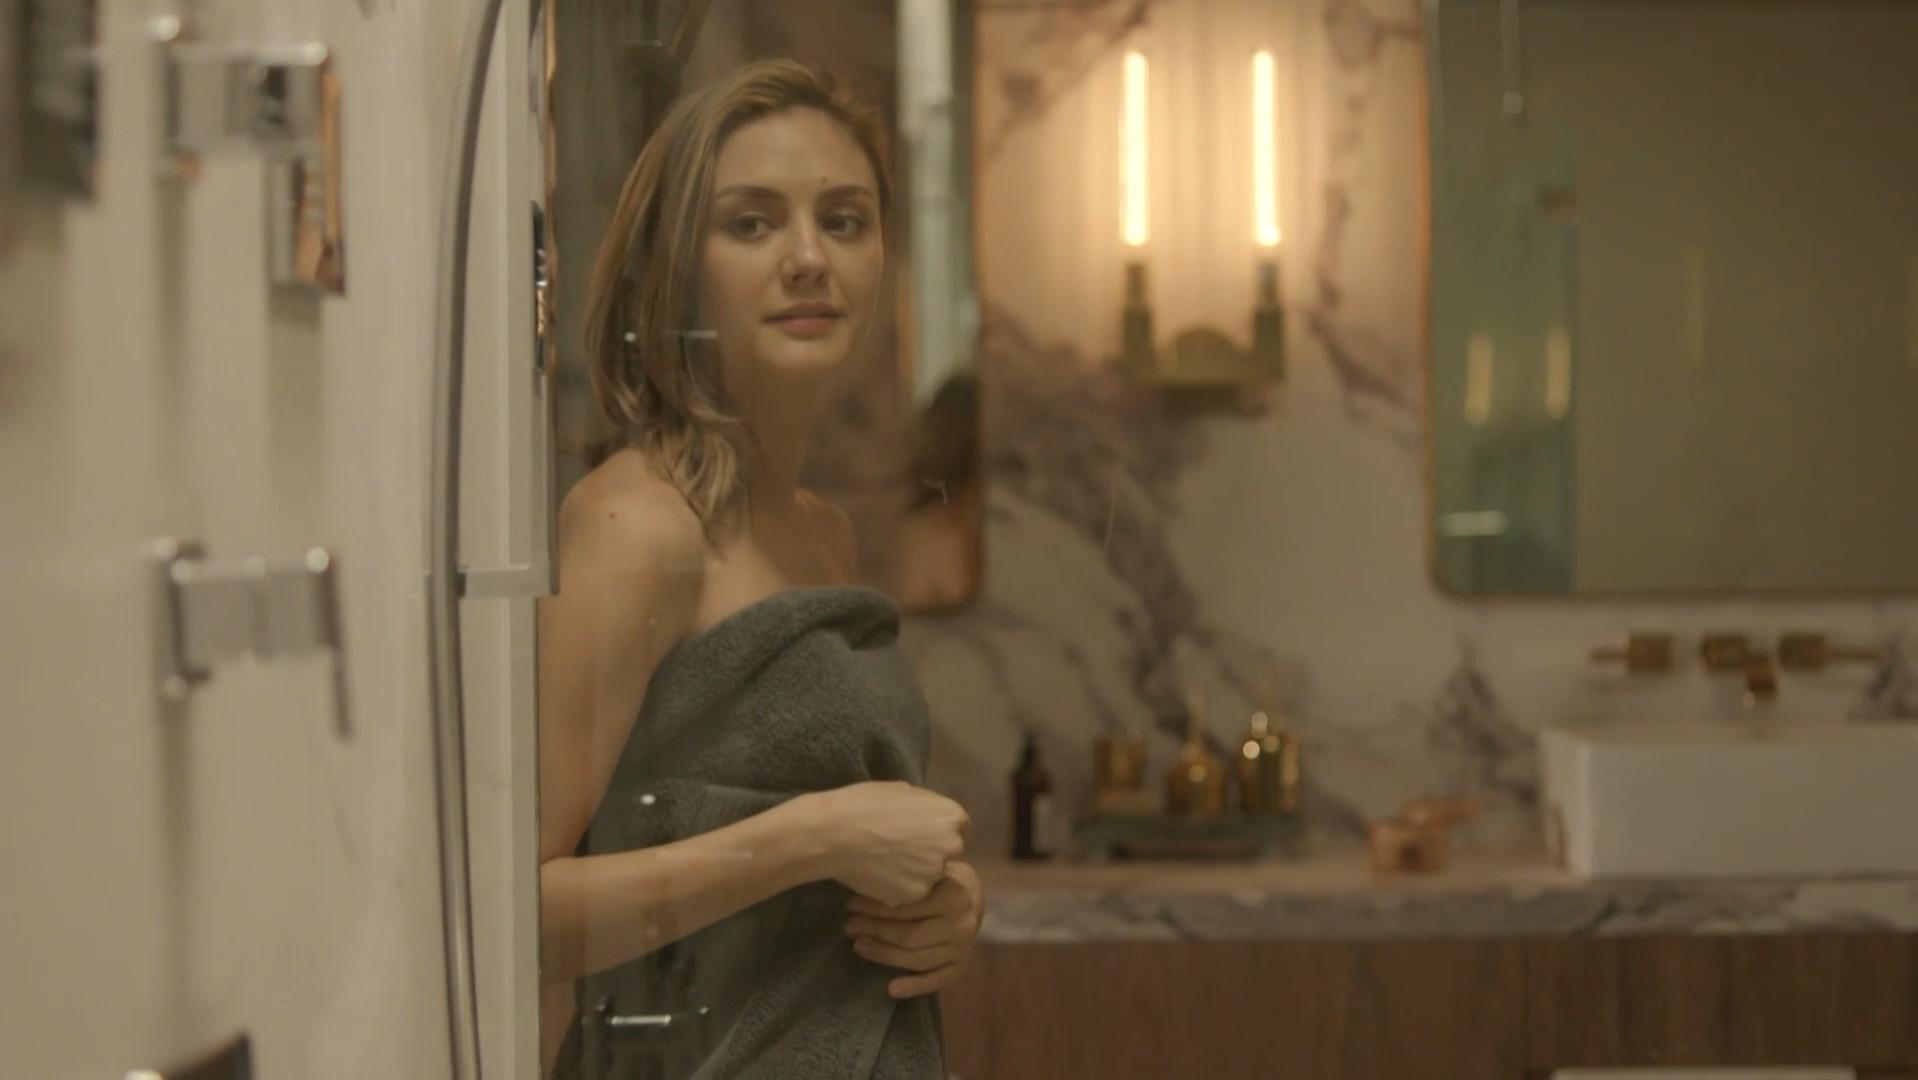 Christine Evangelista nude - The Arrangement s01e02 (2017)